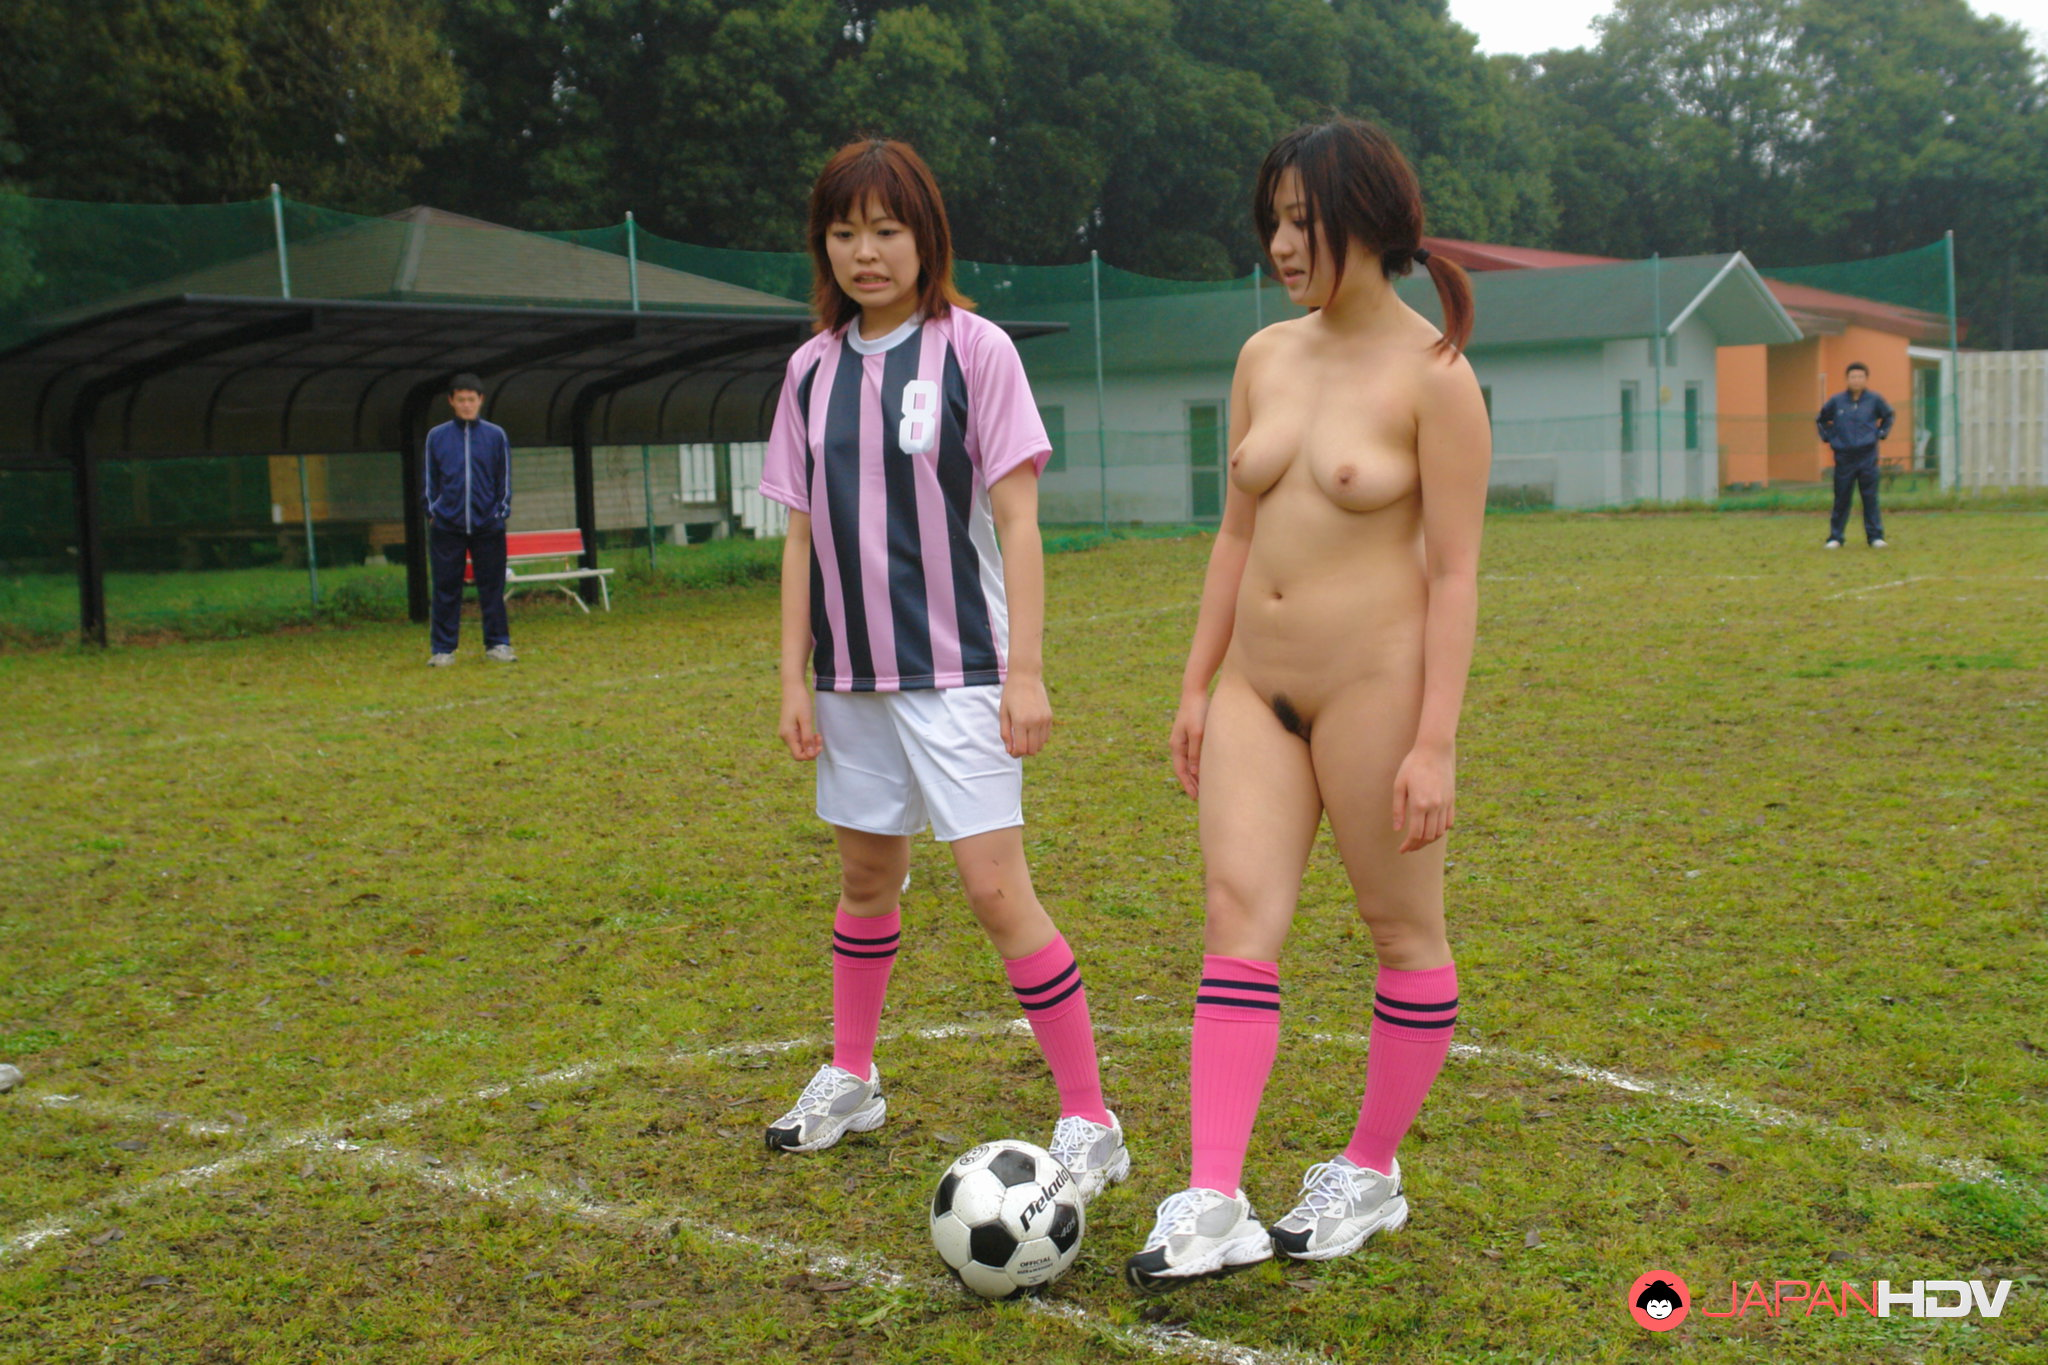 Agree, naked girls playing soccer nude are not